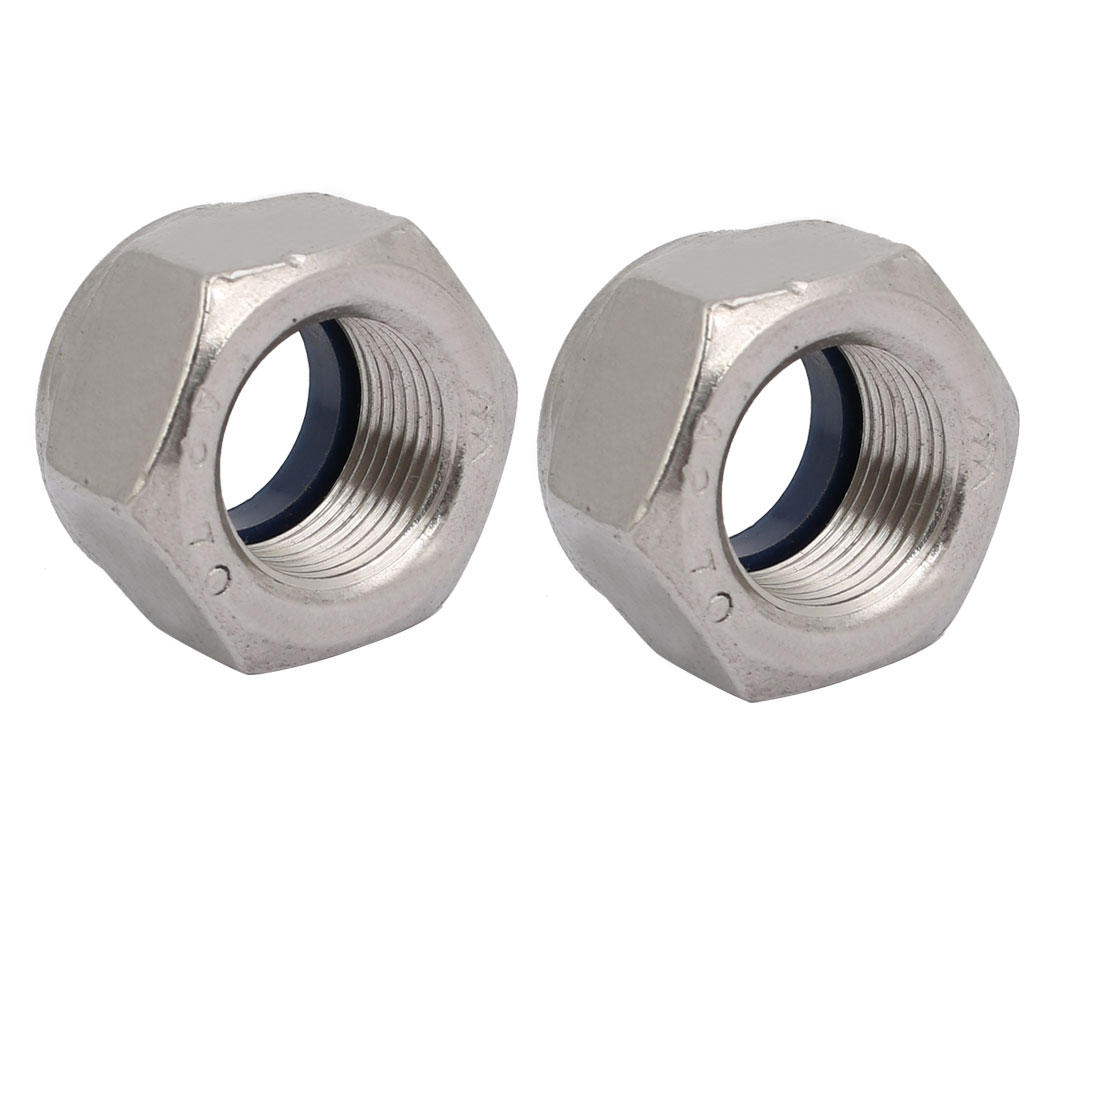 2pcs M20 x 1.5mm Pitch Metric Fine Thread 304 Stainless Steel Hex Lock Nuts